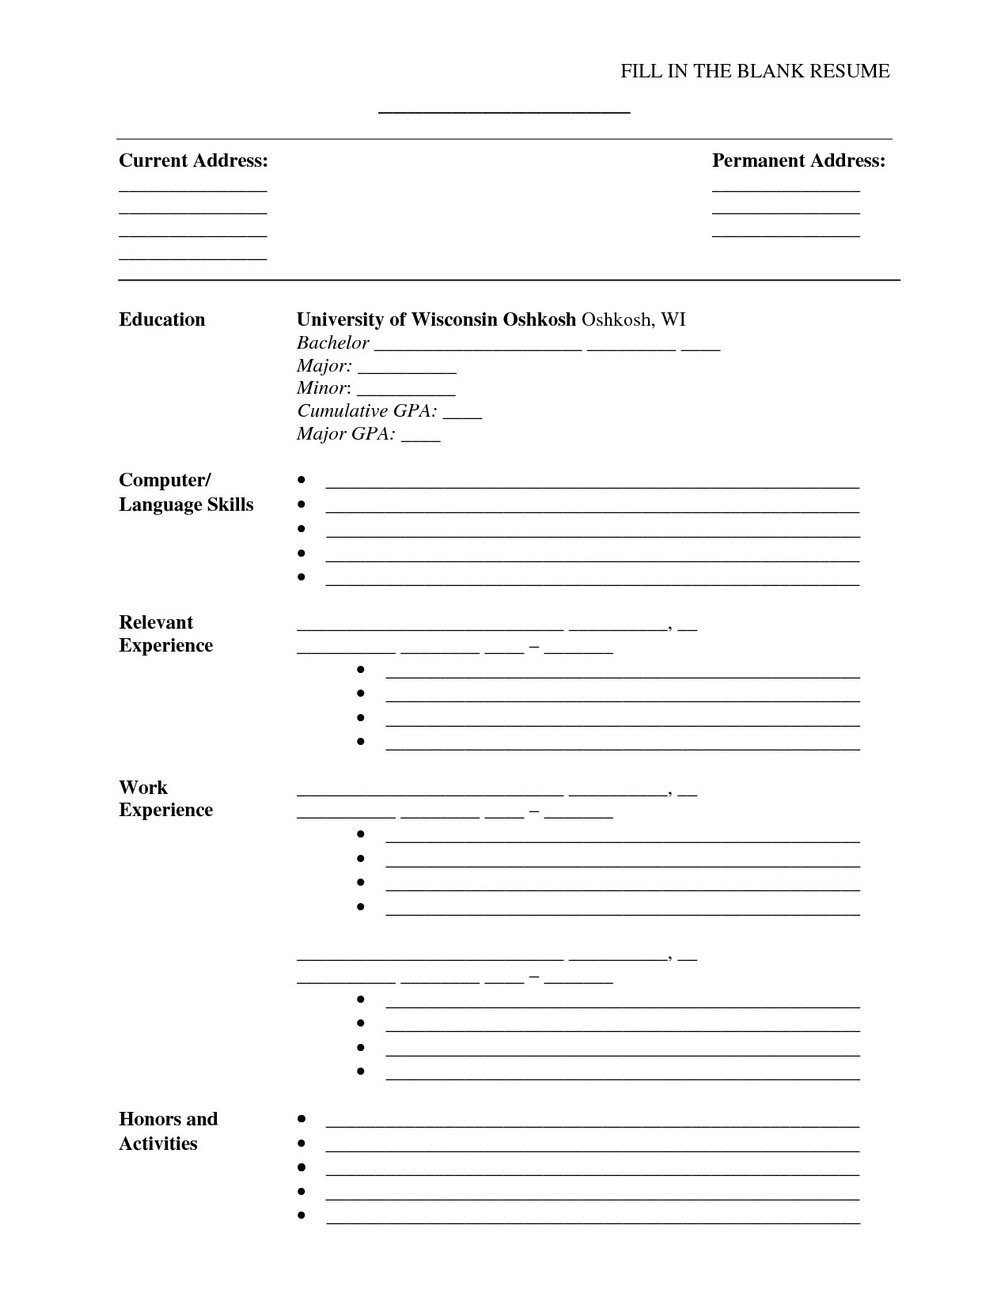 Blank Template For Resume